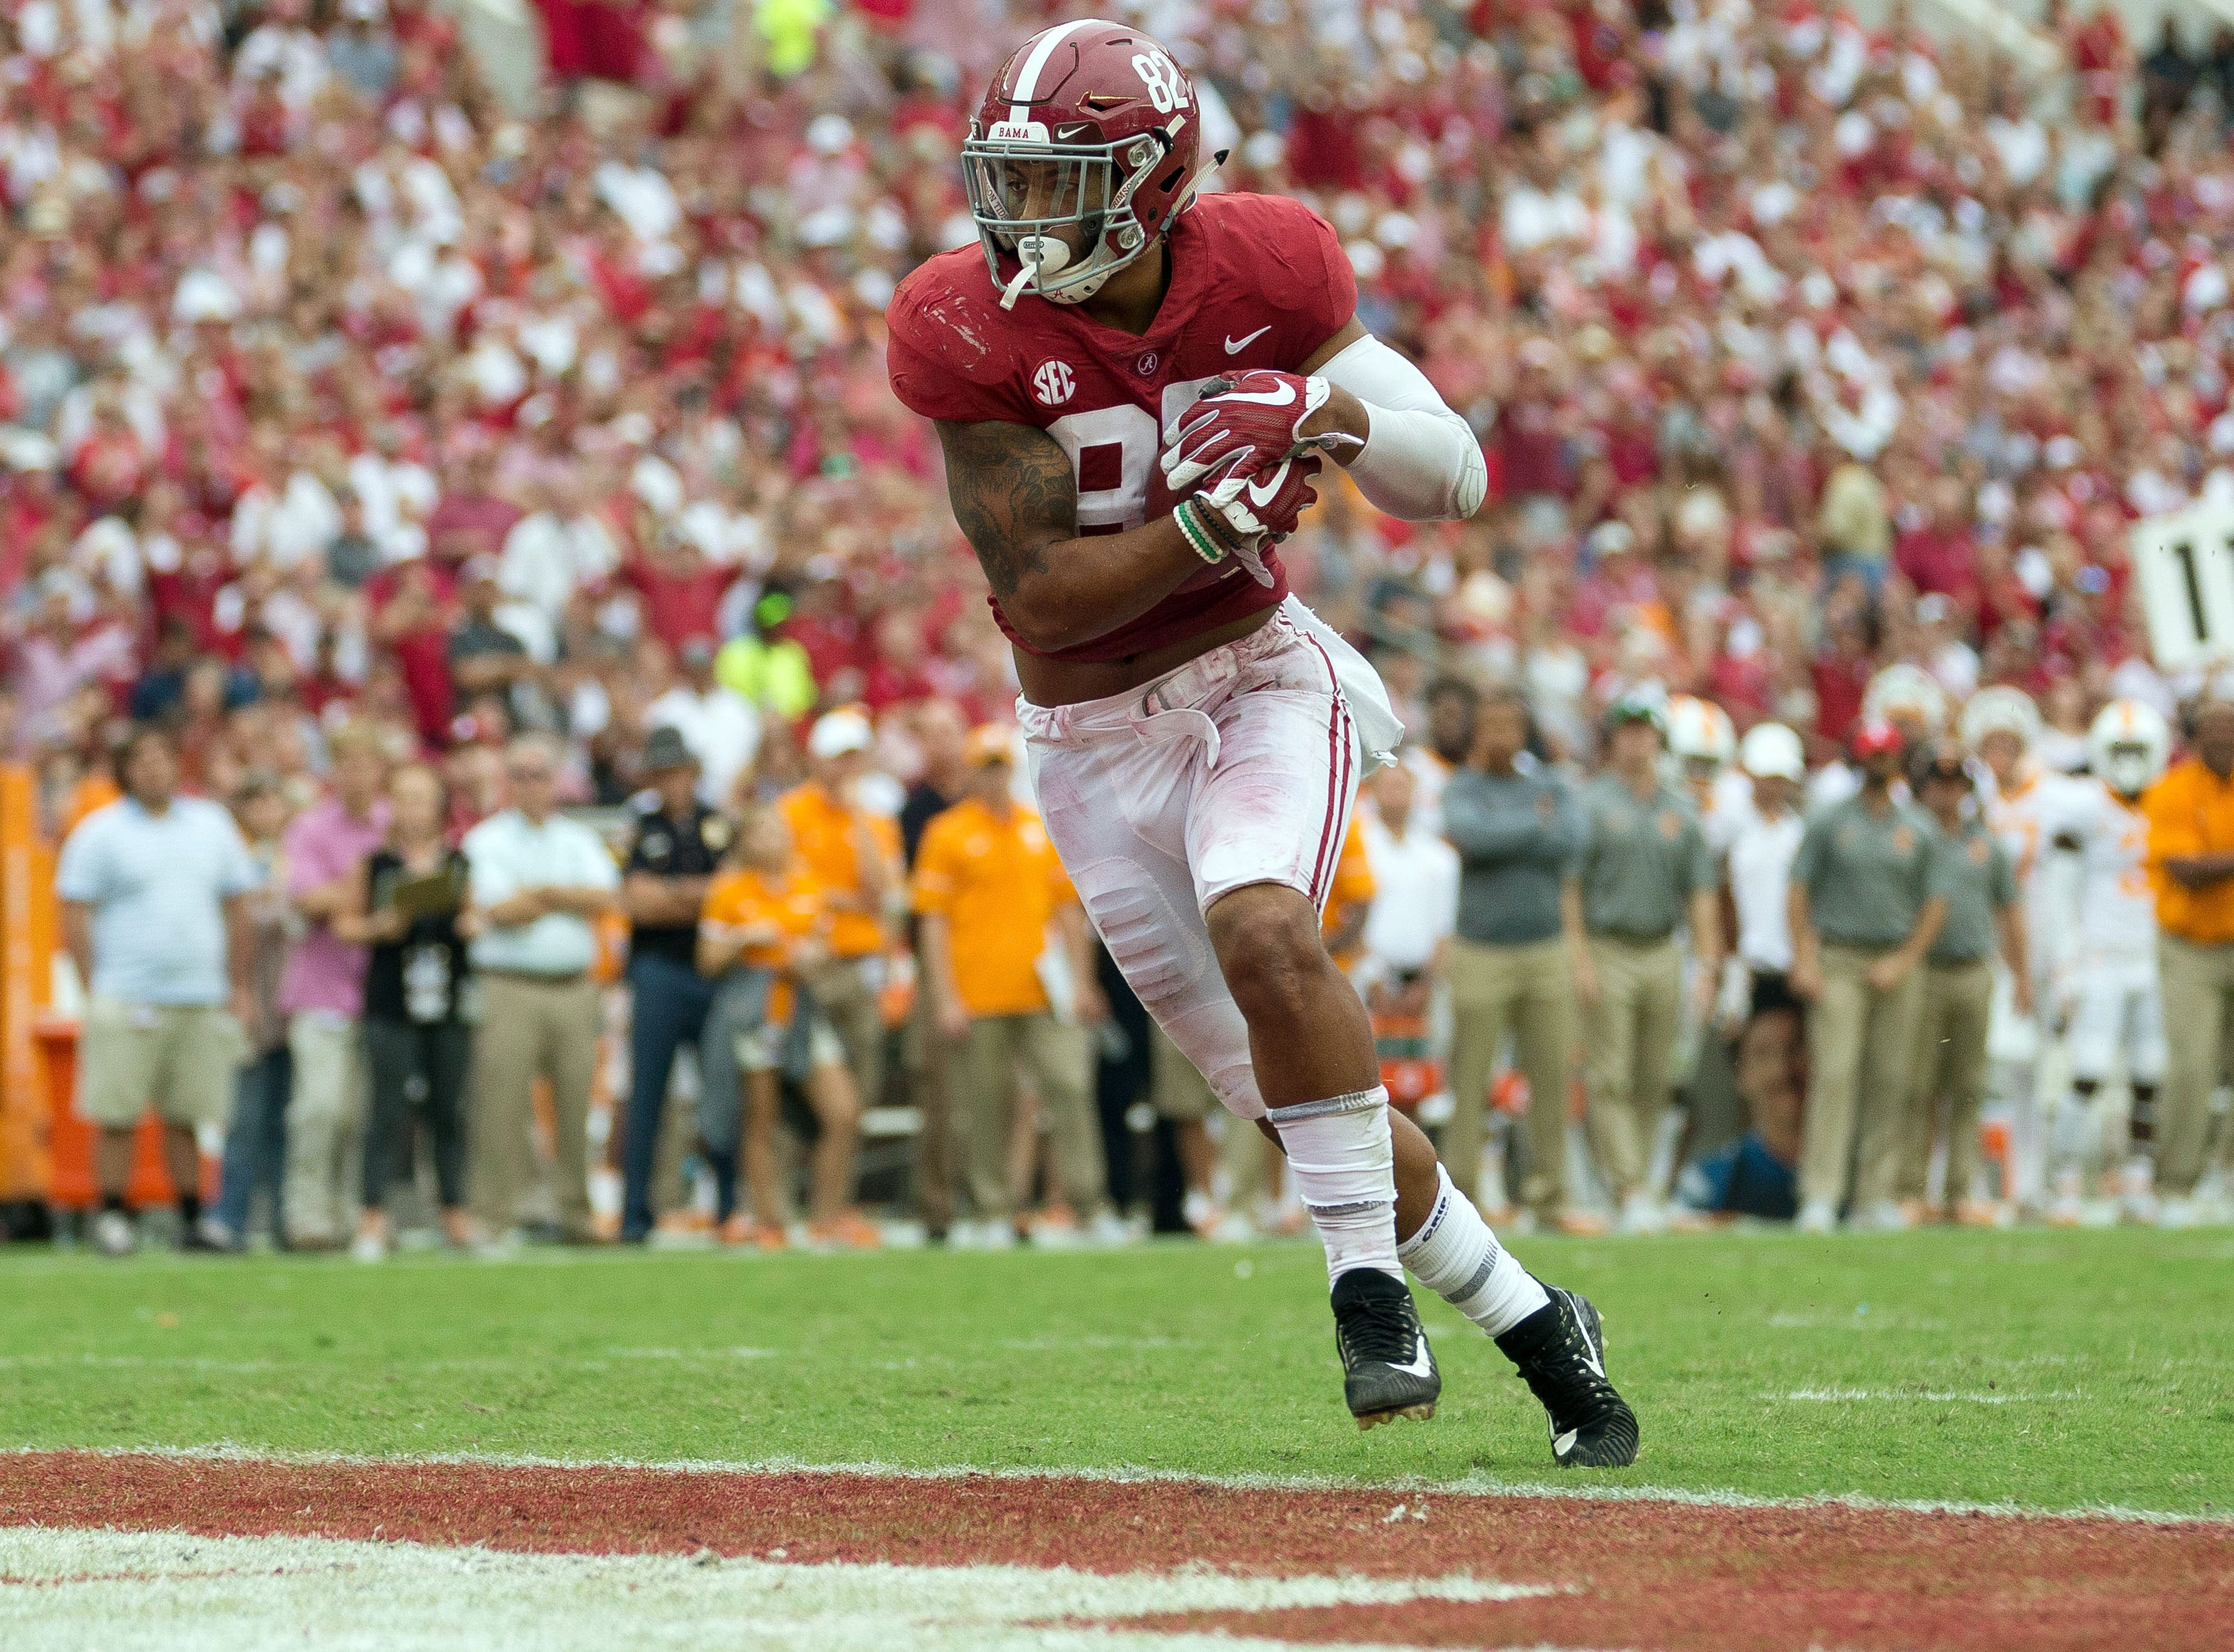 Oct 21, 2017; Tuscaloosa, AL, USA; Alabama Crimson Tide tight end Irv Smith Jr. (82) catches a pass for a touchdown during the third quarter against Tennessee Volunteers at Bryant-Denny Stadium. Mandatory Credit: Marvin Gentry-USA TODAY Sports